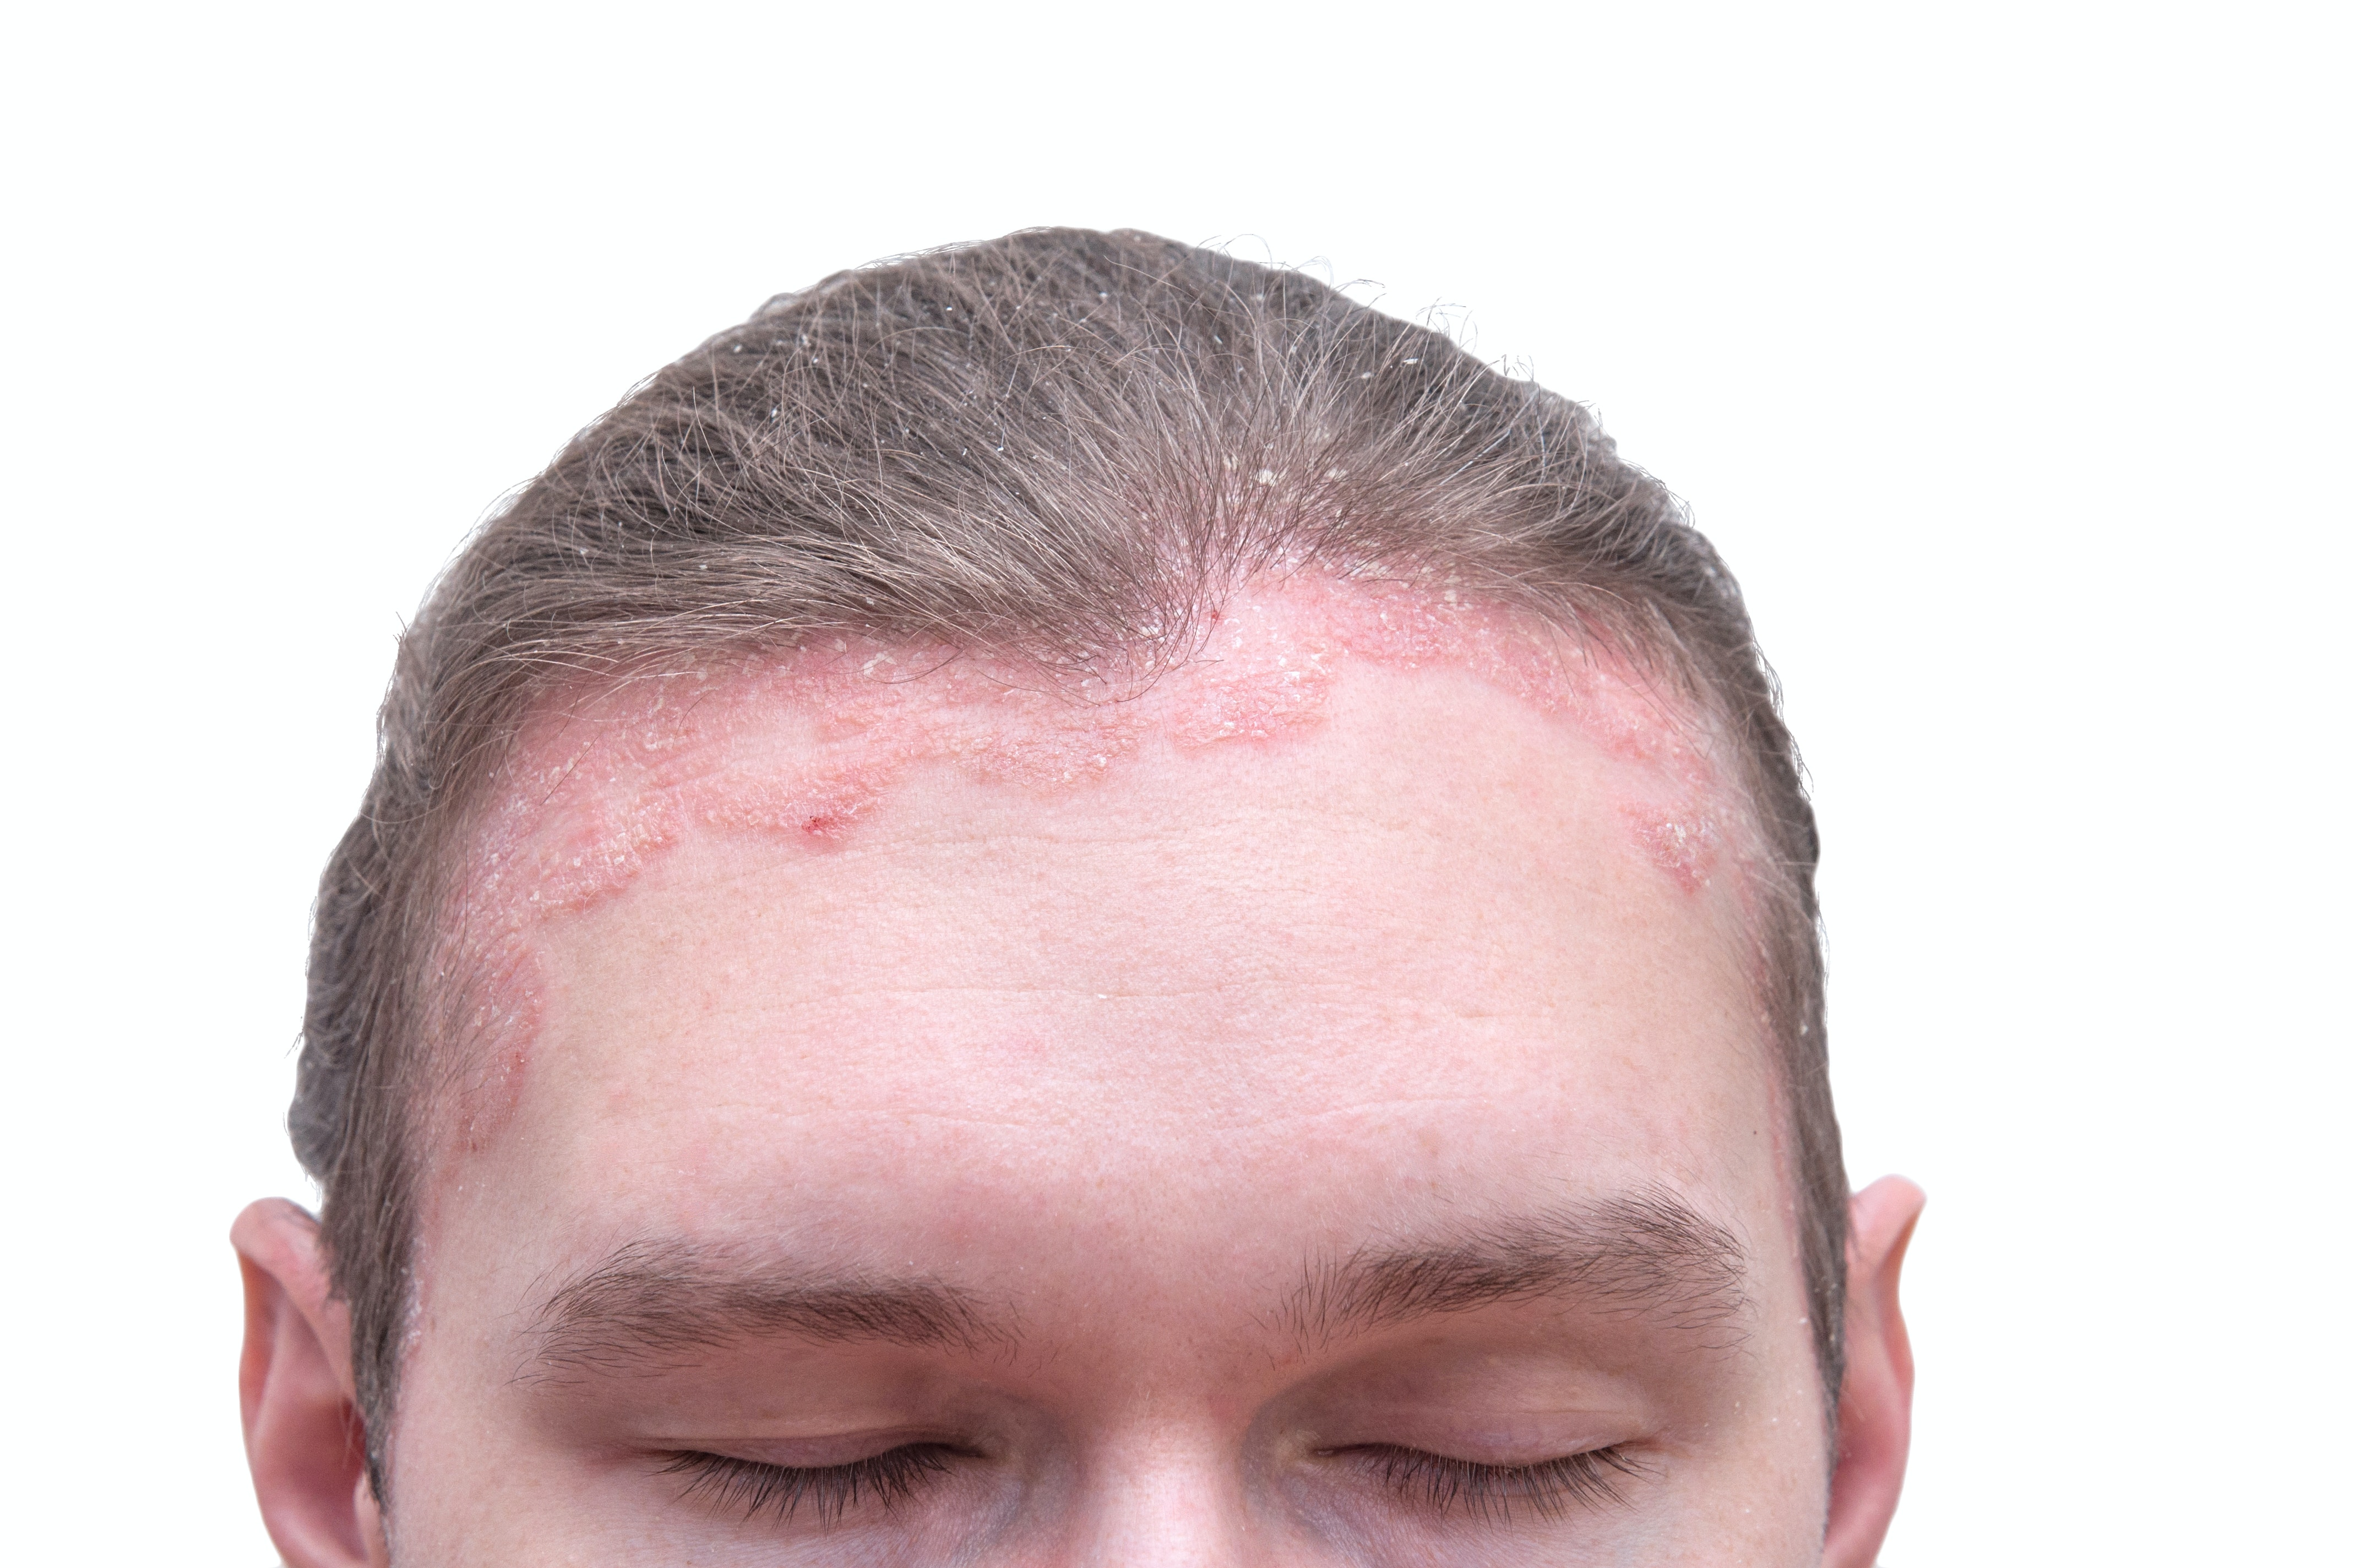 An image depicting a person suffering from scalp redness symptoms